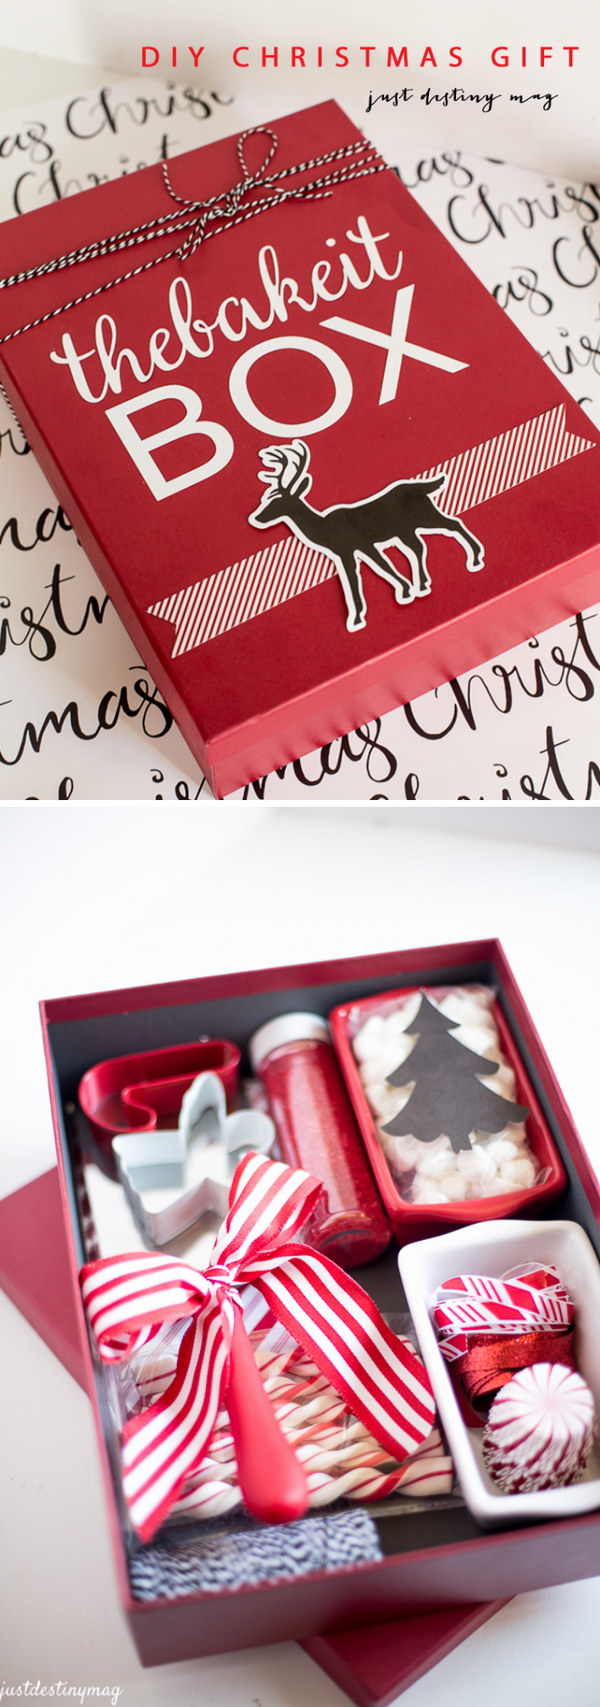 DIY Christmas Gift Box.